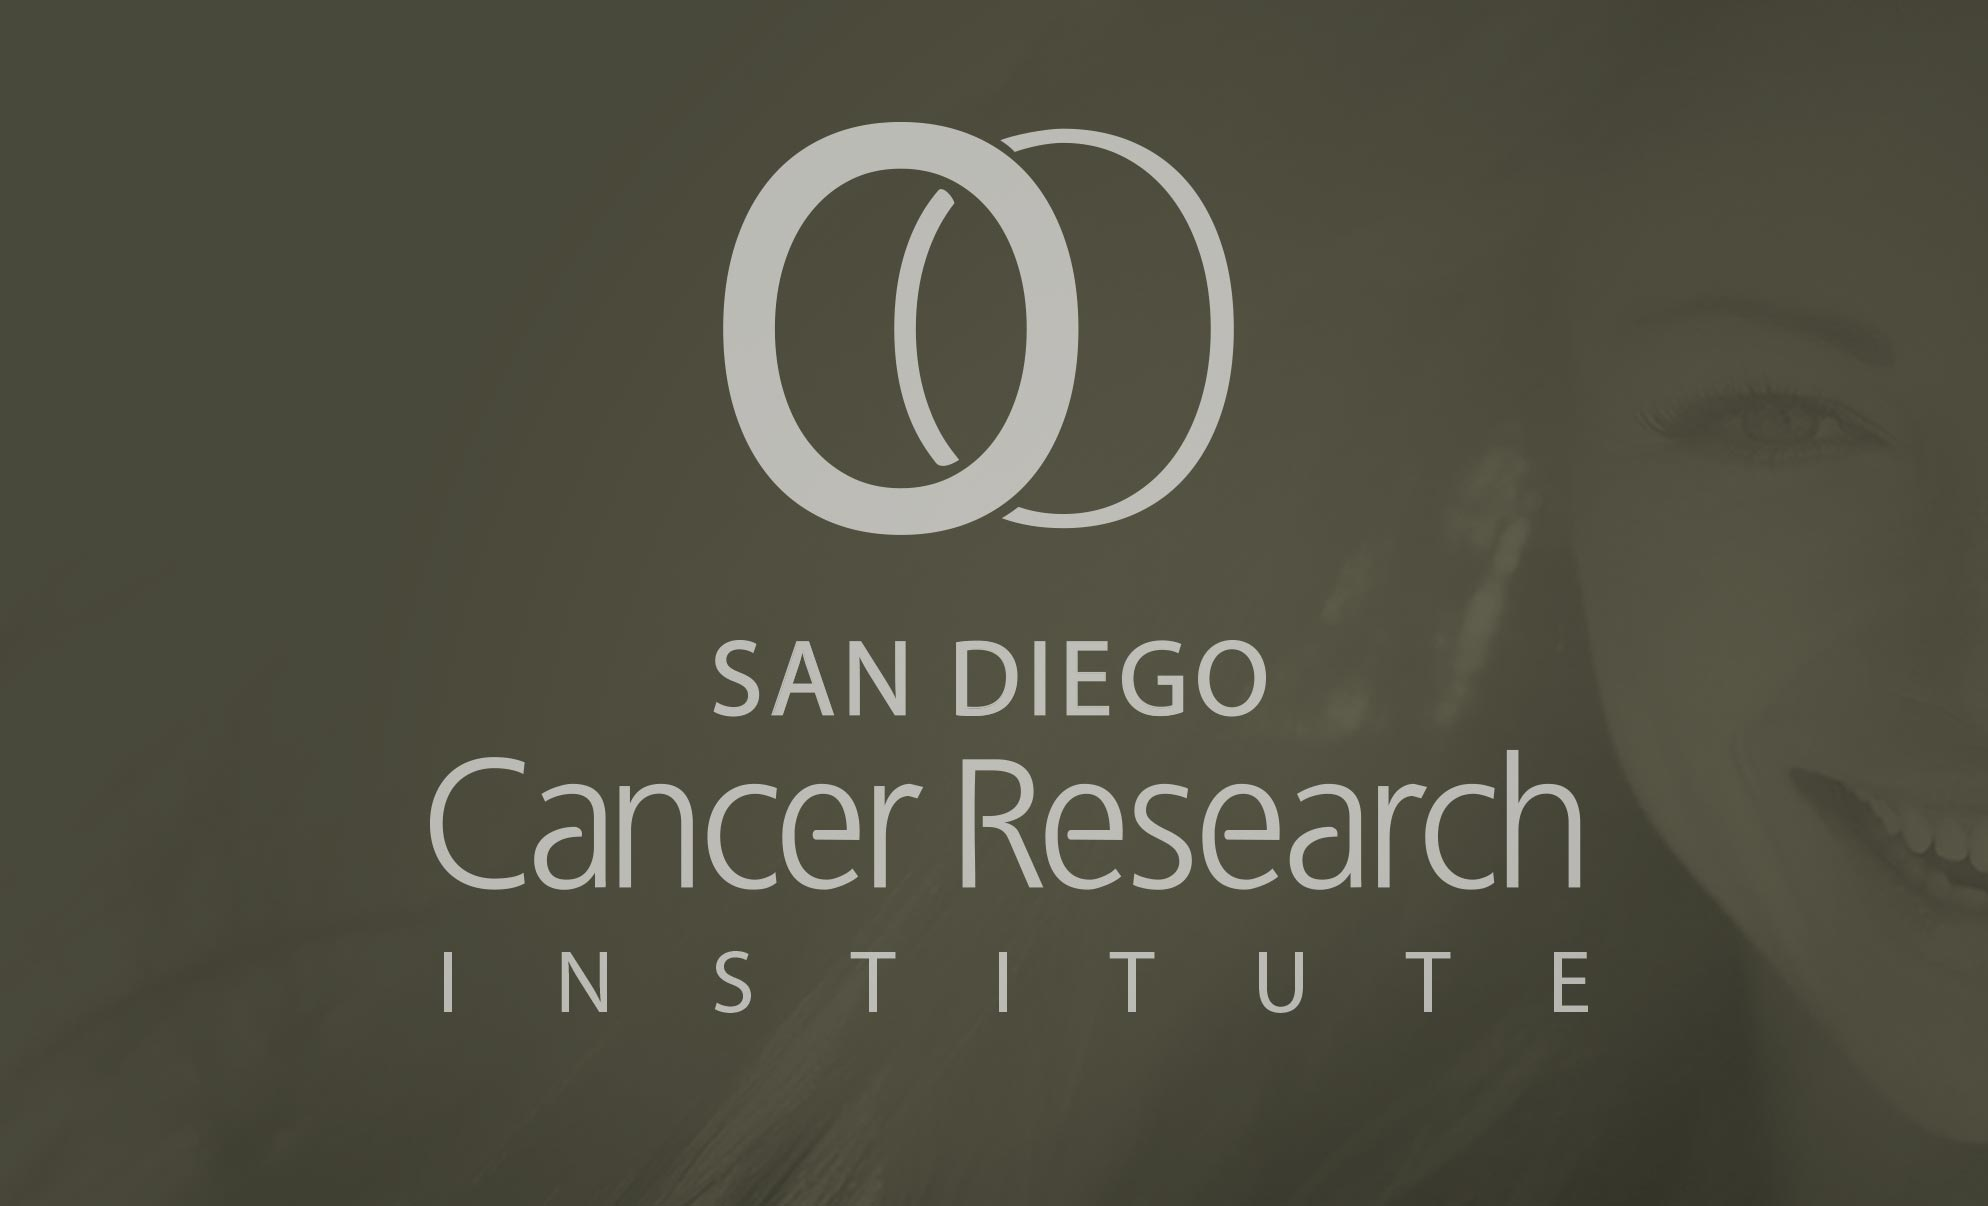 San Diego Cancer Research Identity Logotype Logo